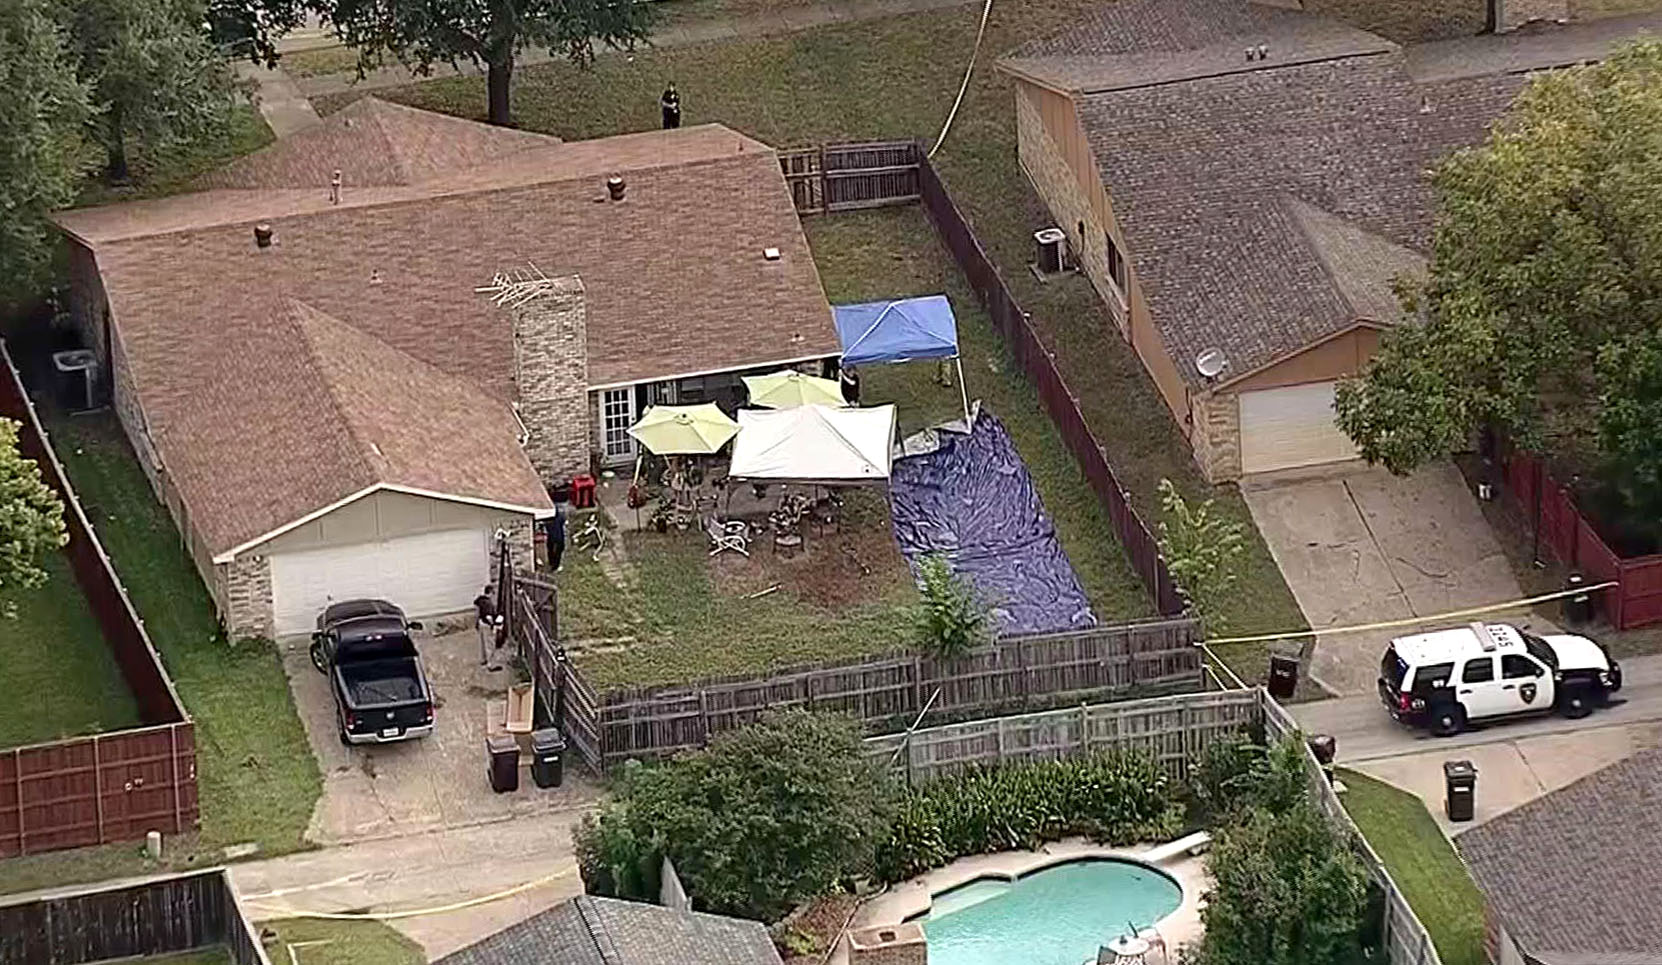 Shooting at Texas Football Party, Man Kills 8; Police Kill Suspect